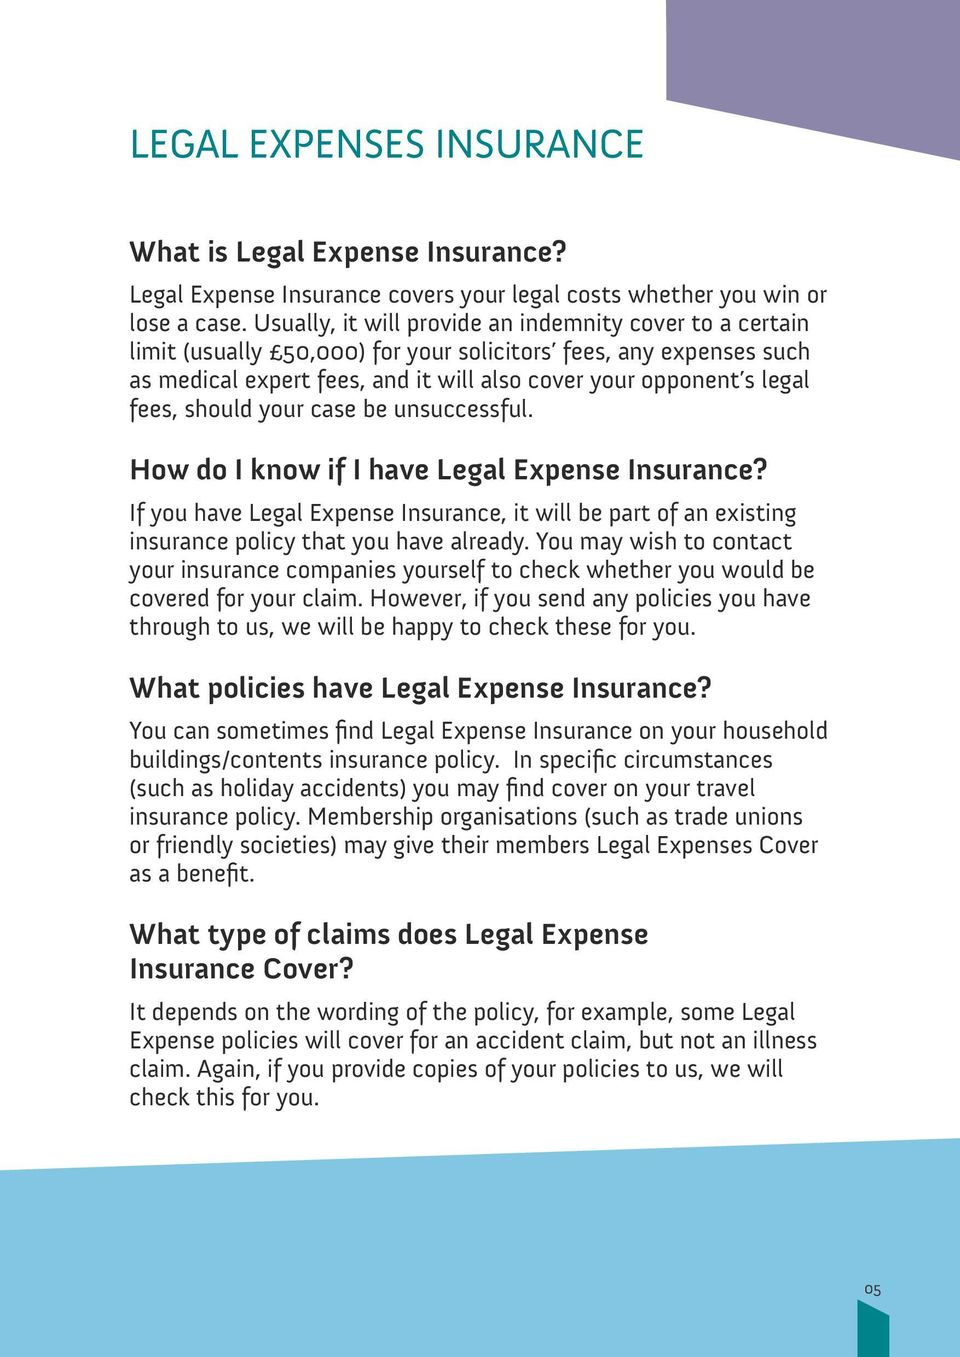 should your case be unsuccessful. How do I know if I have Legal Expense Insurance? If you have Legal Expense Insurance, it will be part of an existing insurance policy that you have already.